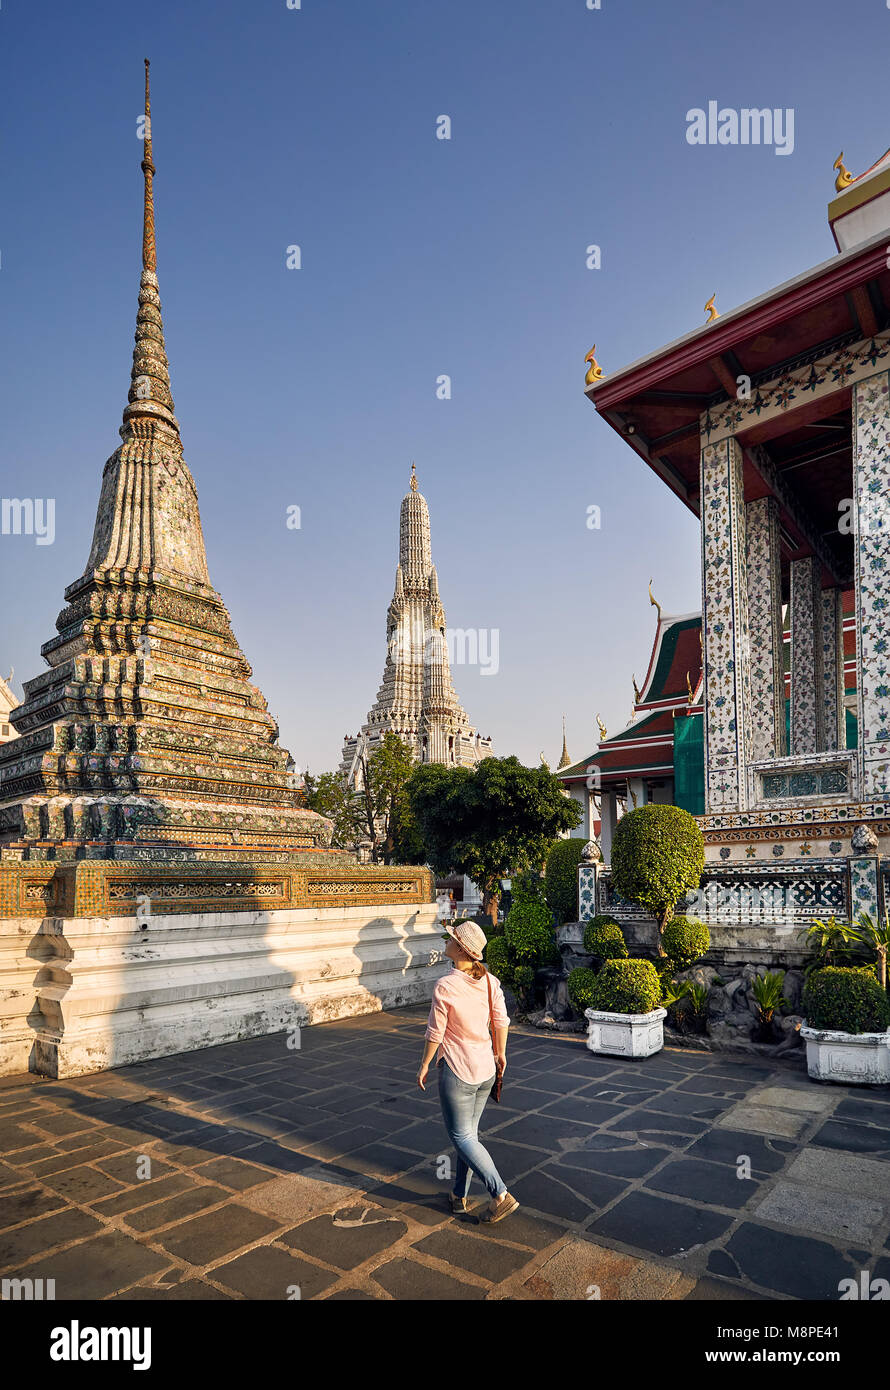 Beautiful tourist woman in hat and pink shirt walking in Wat Arun temple at sunset in Bangkok, Thailand. Stock Photo